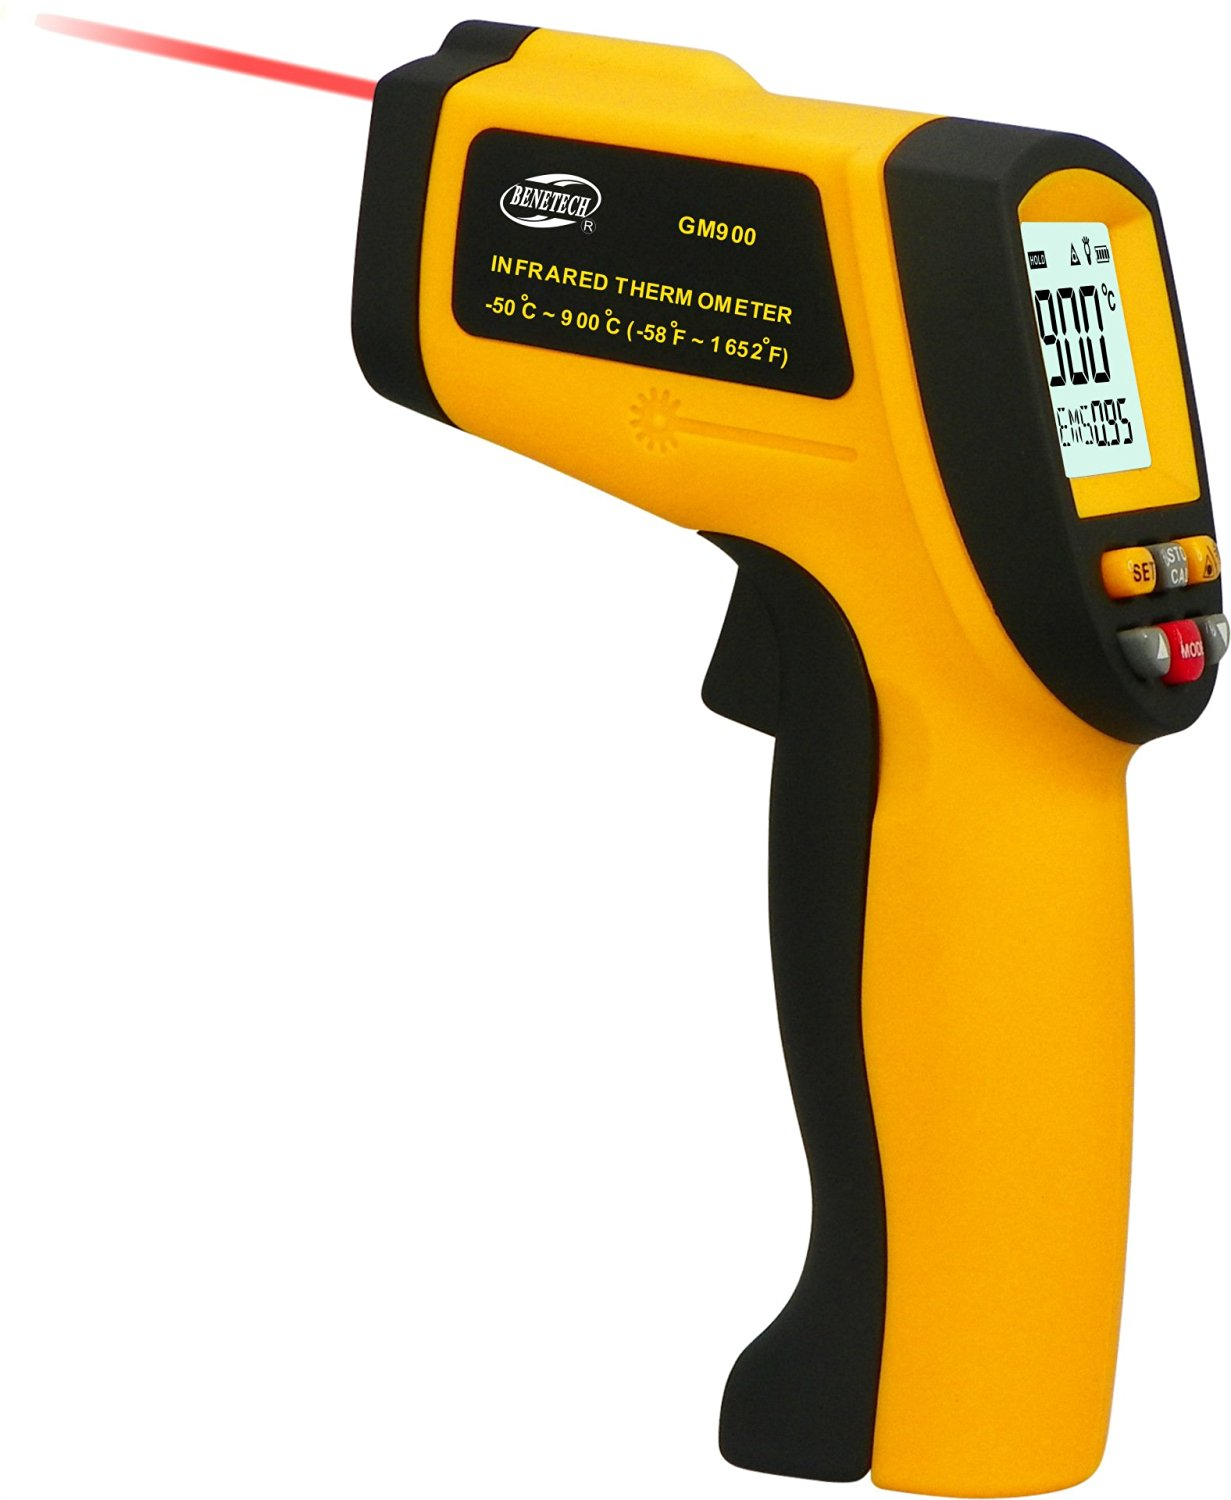 CACHOR GM900 Non-Contact IR Digital Infrared Thermometer Laser Point -50°C to 900°C (-58°F to 1652°F) GM900 Non-Contact Precise Digital IR Laser Infrared Pointer Thermometer -50degree to 900 Degree Gu